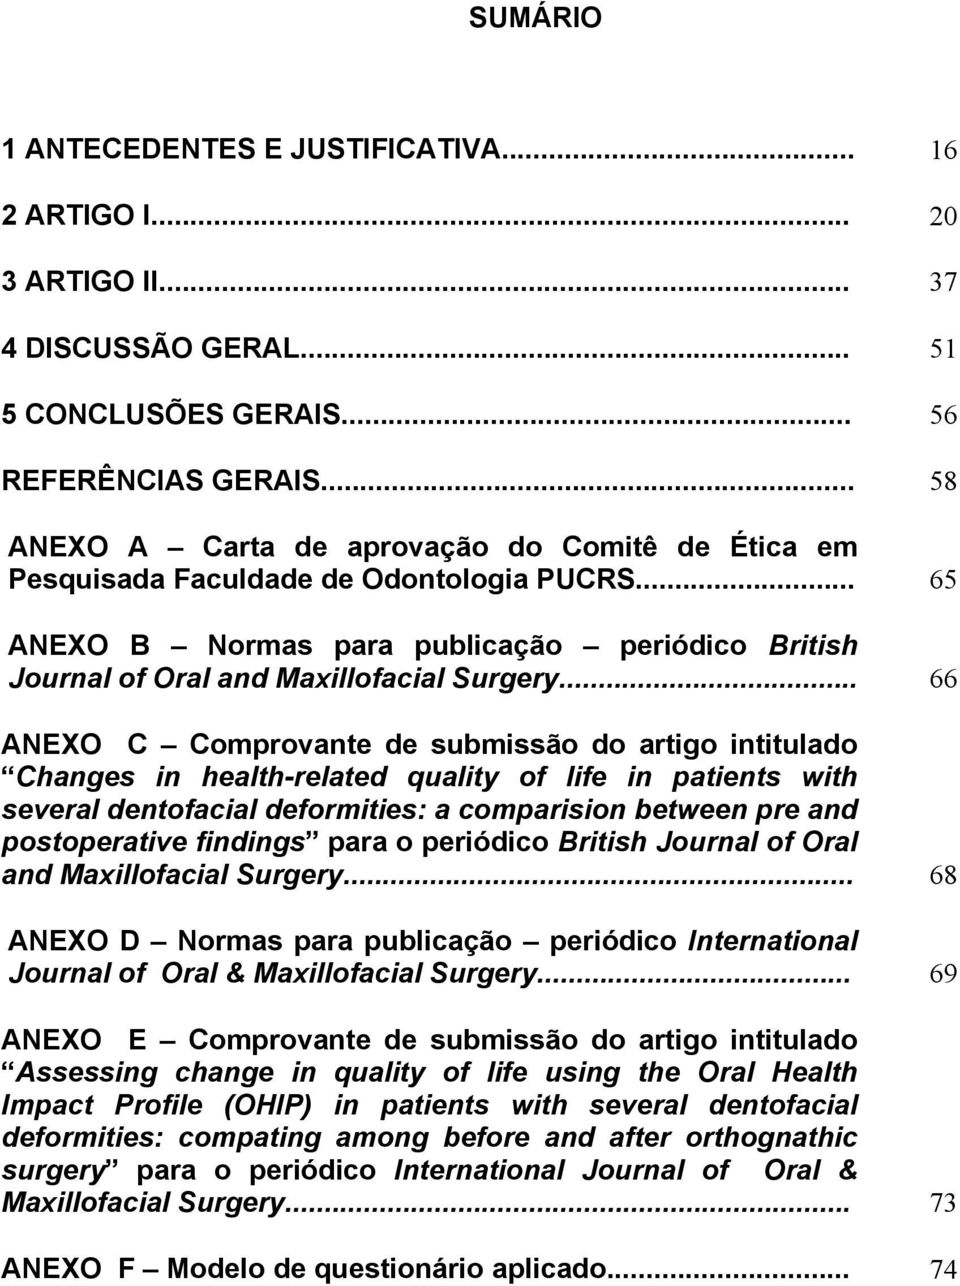 .. 66 ANEXO C Comprovante de submissão do artigo intitulado Changes in health-related quality of life in patients with several dentofacial deformities: a comparision between pre and postoperative